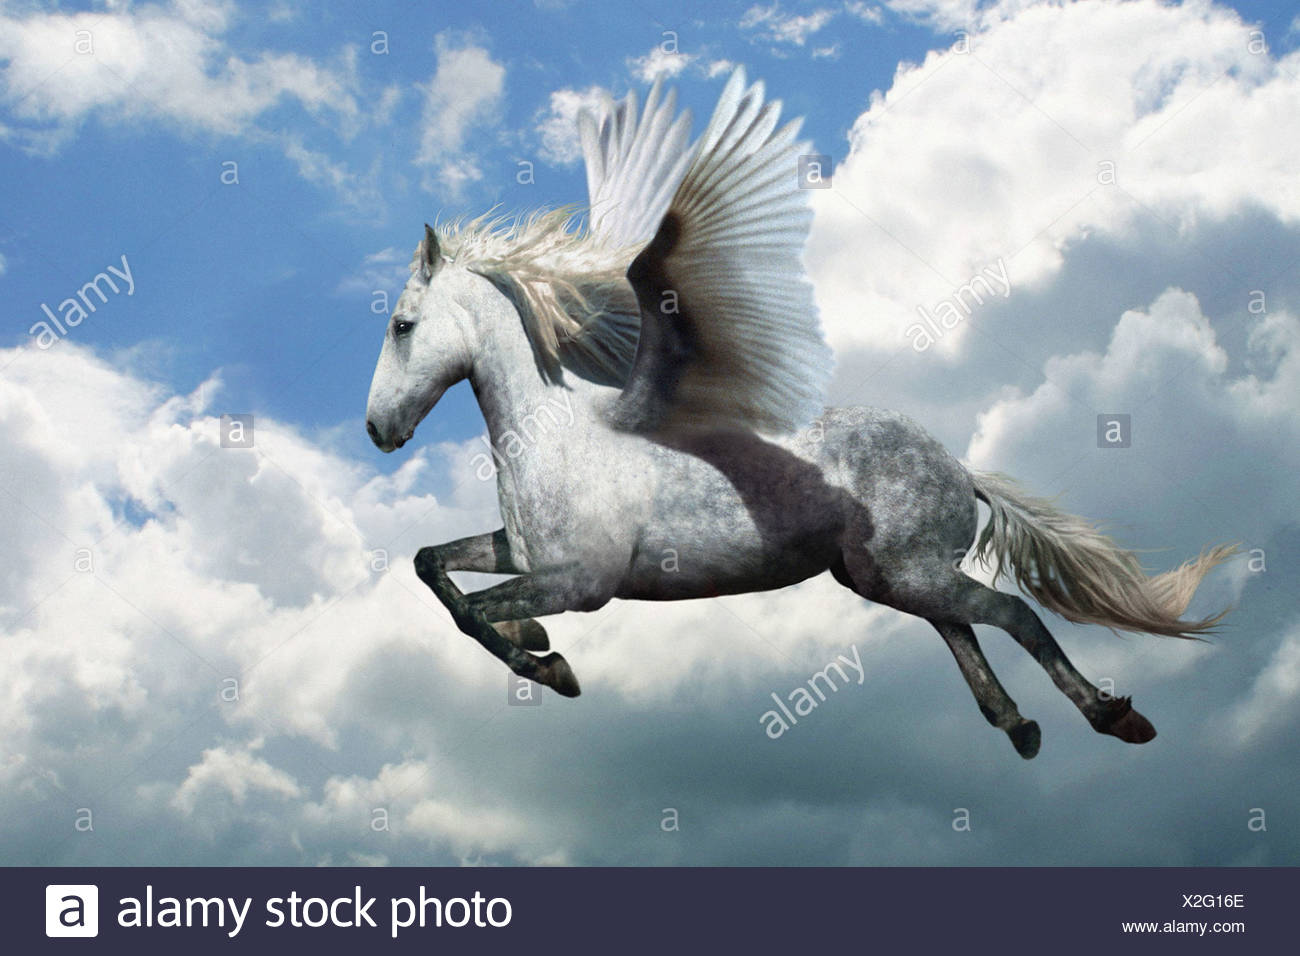 Mythical Creature Of Mythology Stock Photos & Mythical